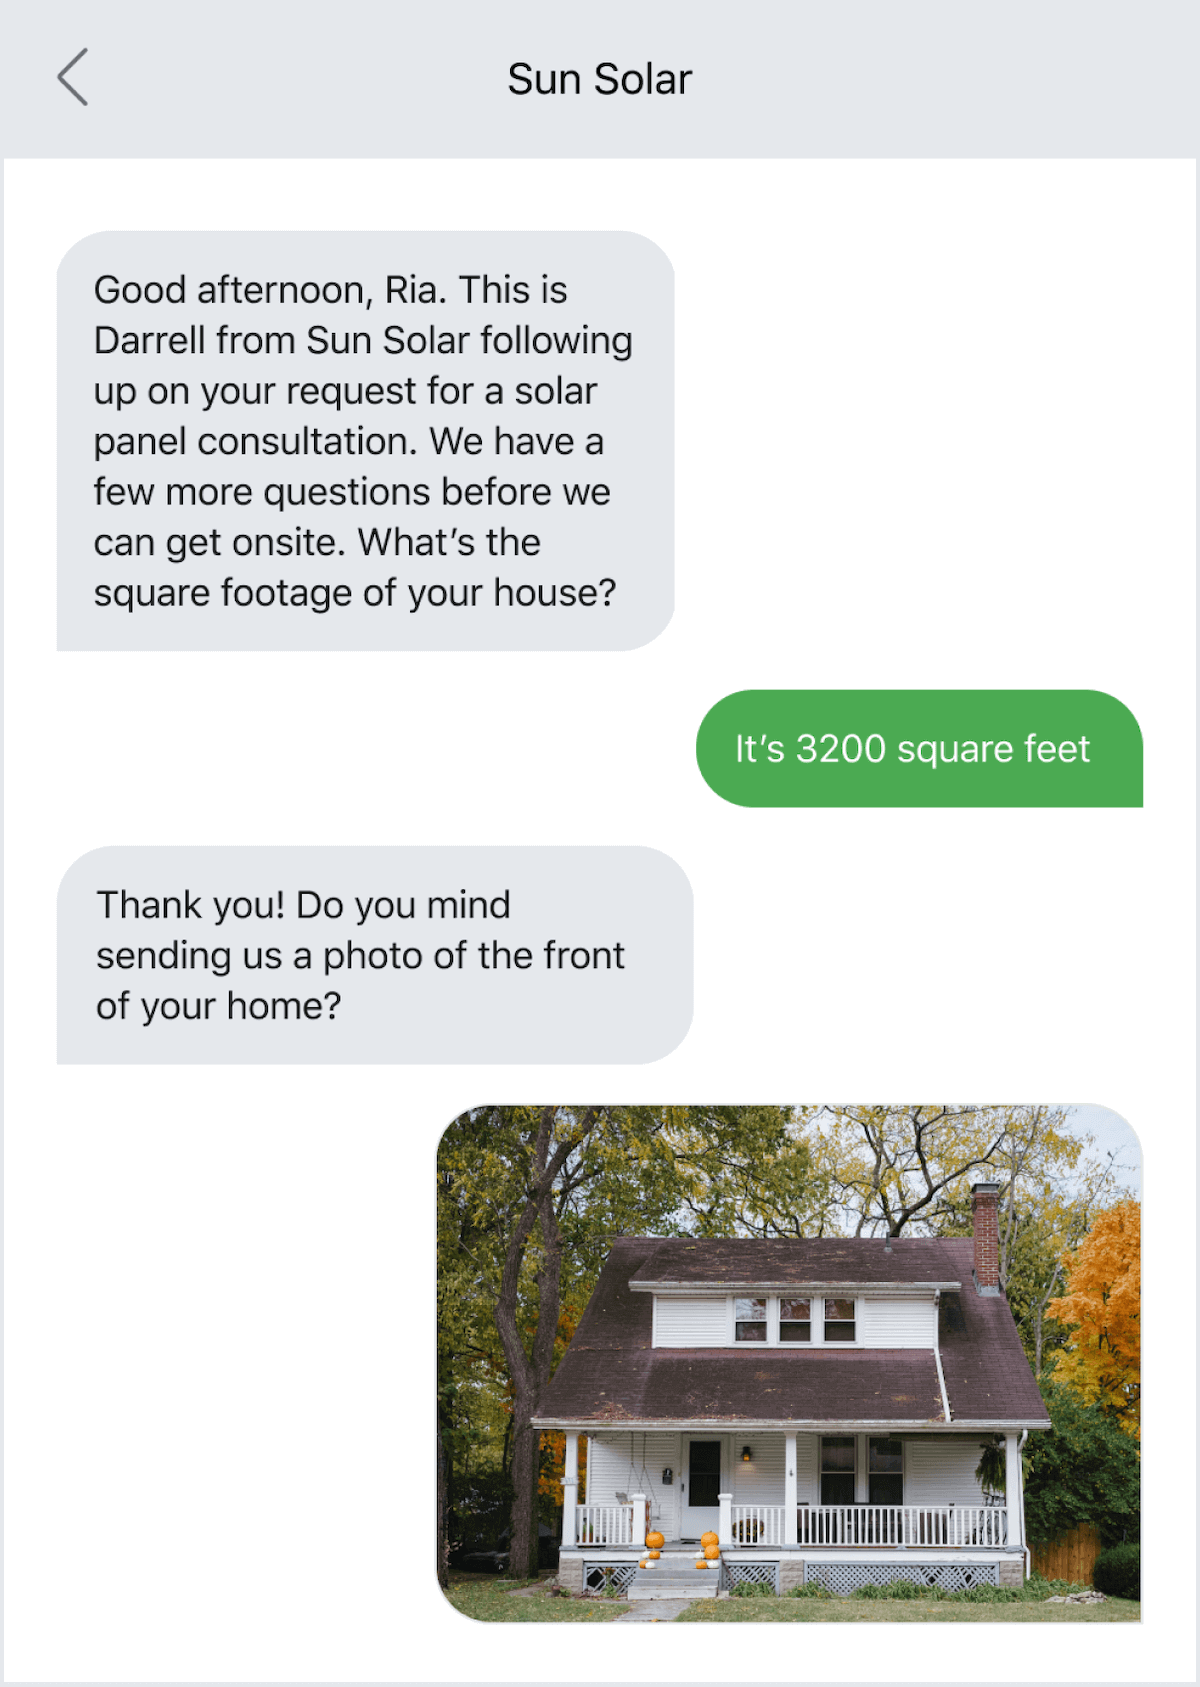 Text message example of an ongoing two-way conversation with a customer